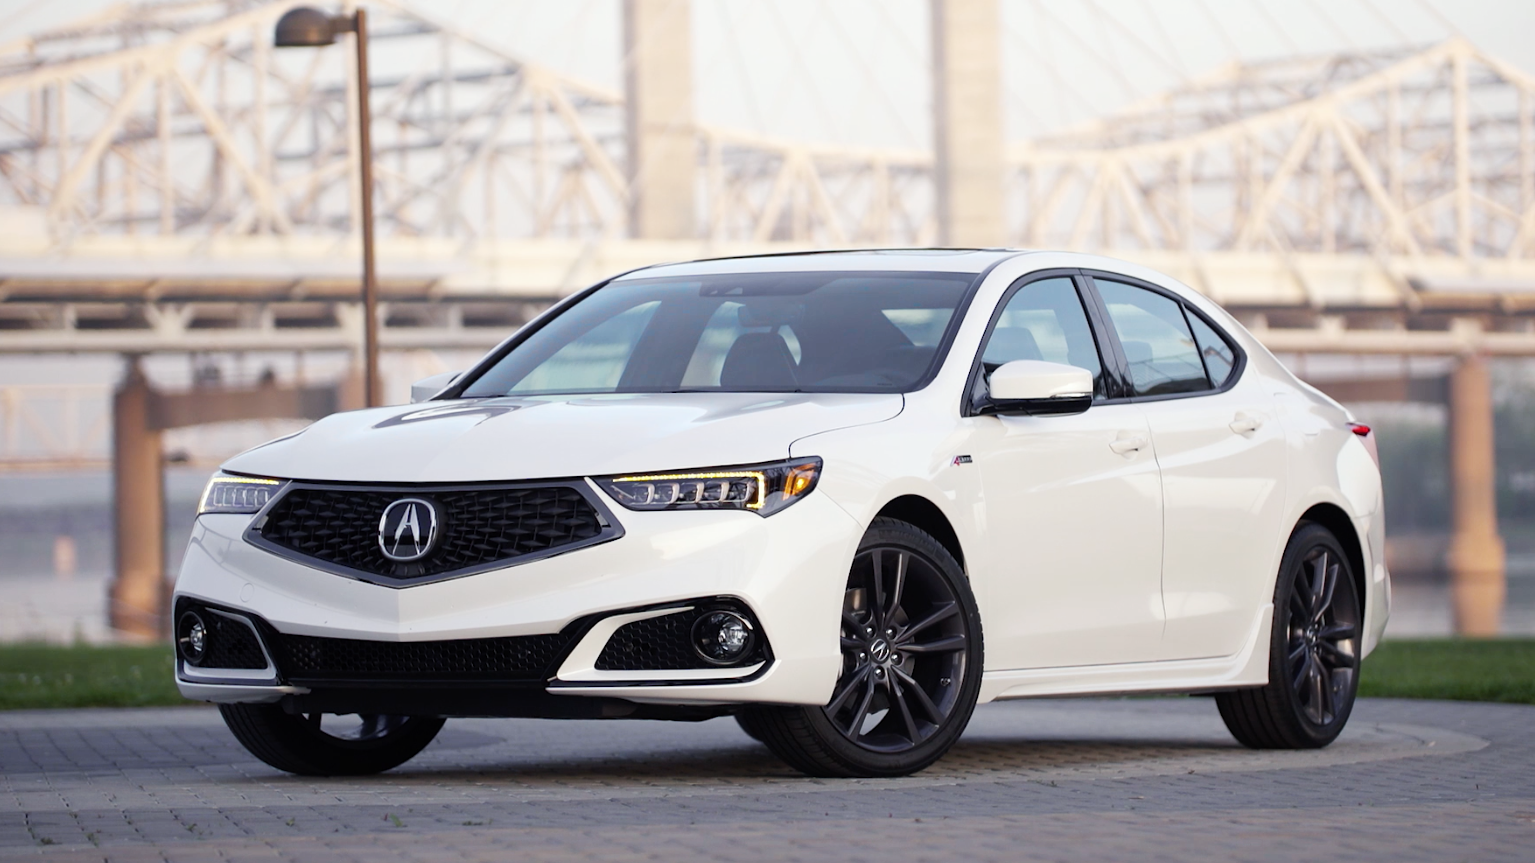 Video: Five things you need to know about the 2018 Acura TLX